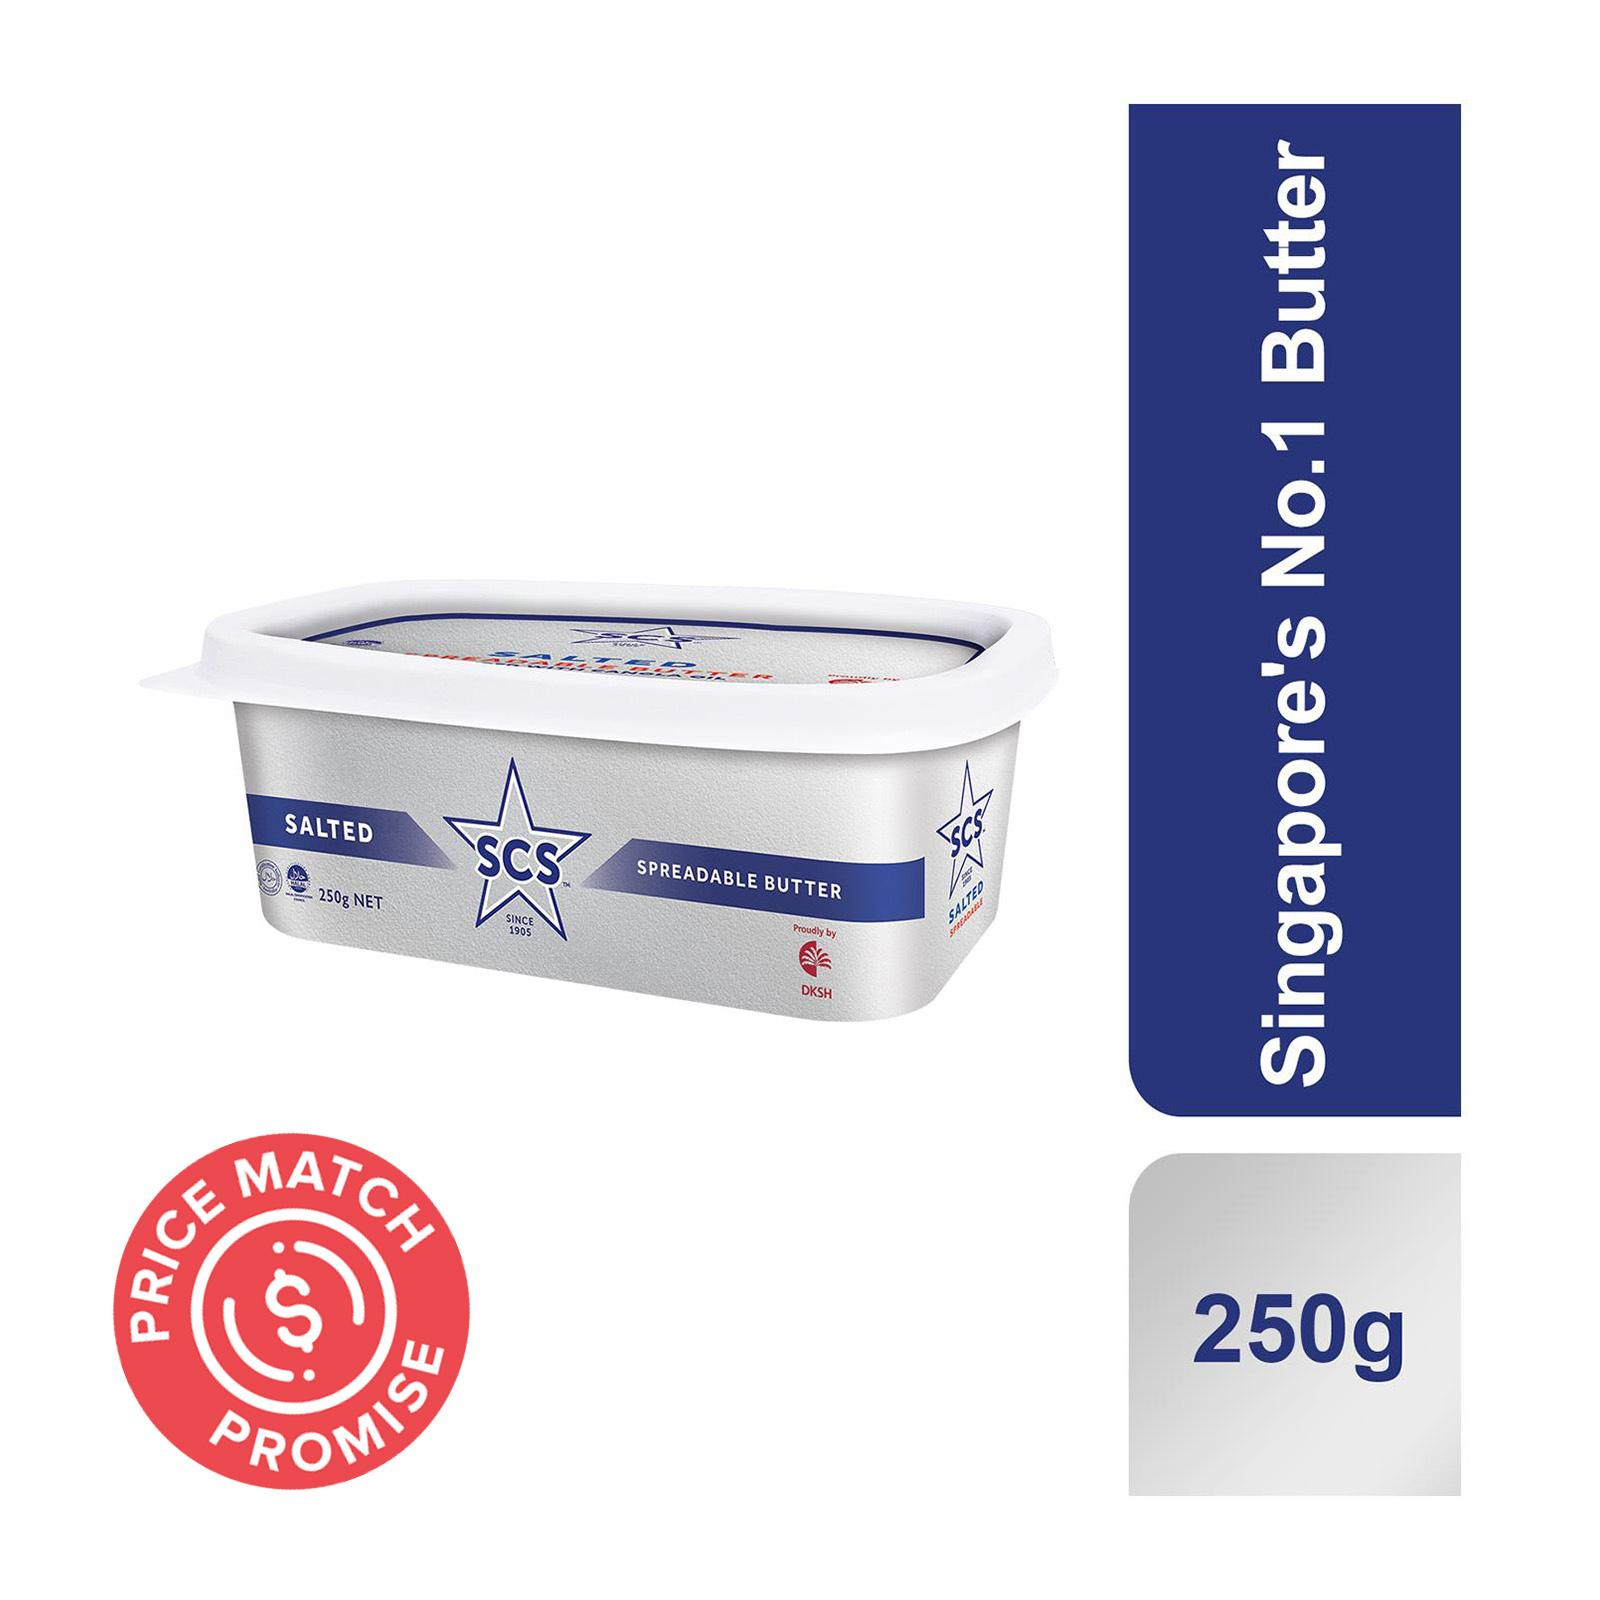 SCS Butter Spread Tub - Salted 250g